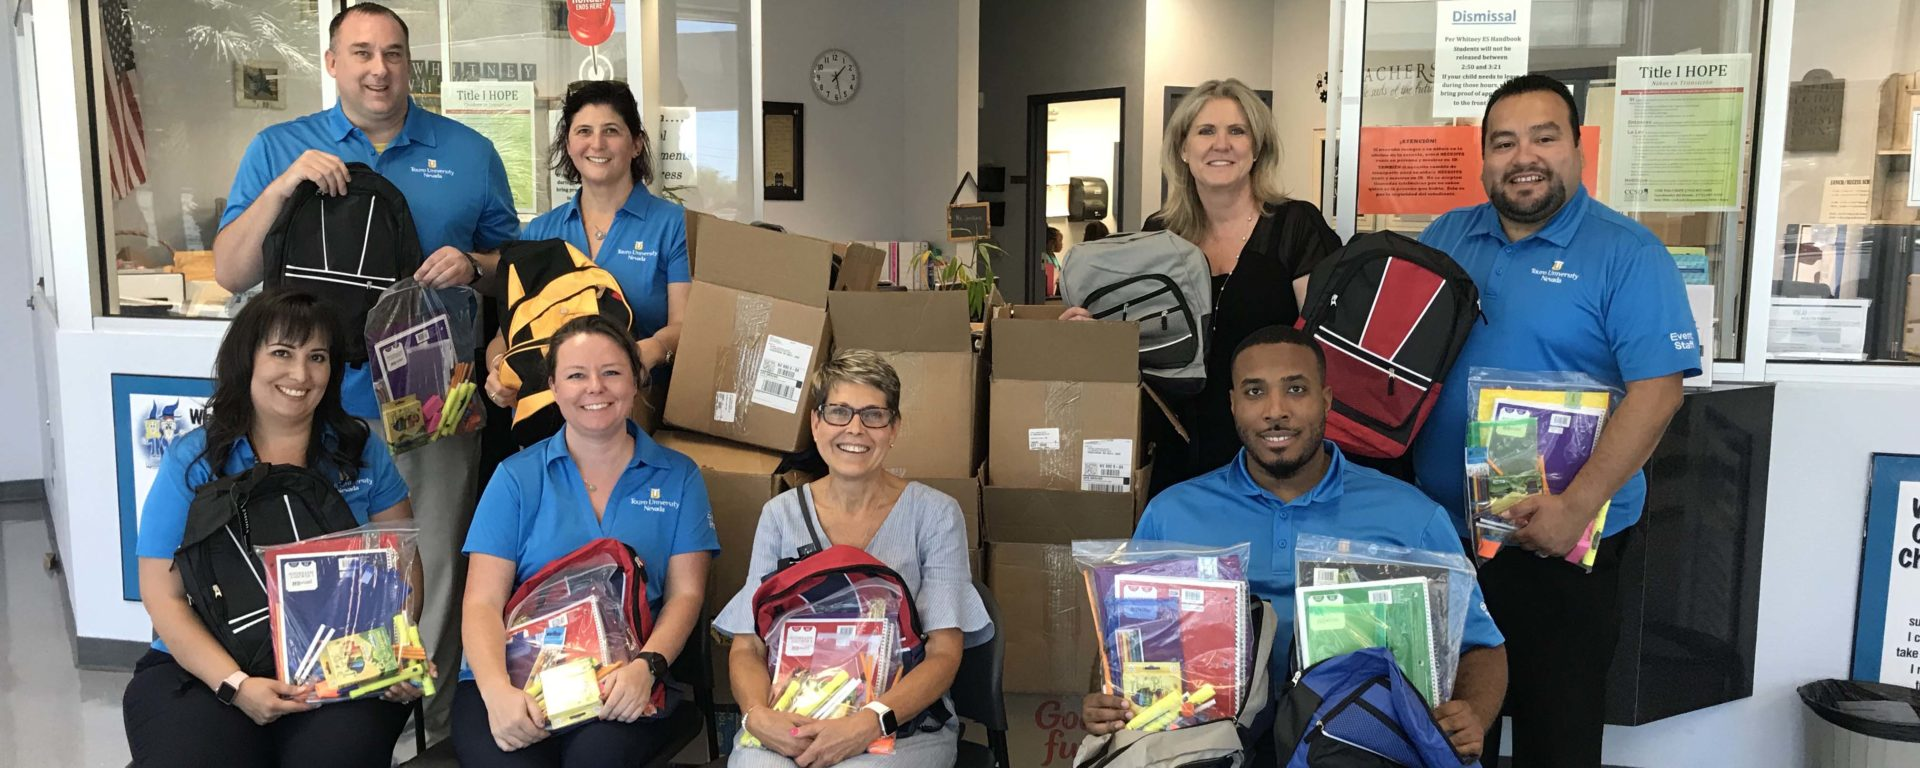 The Touro University Nevada community came together by donating more than $1,400 in school supplies for the underprivileged students at Whitney Elementary School.